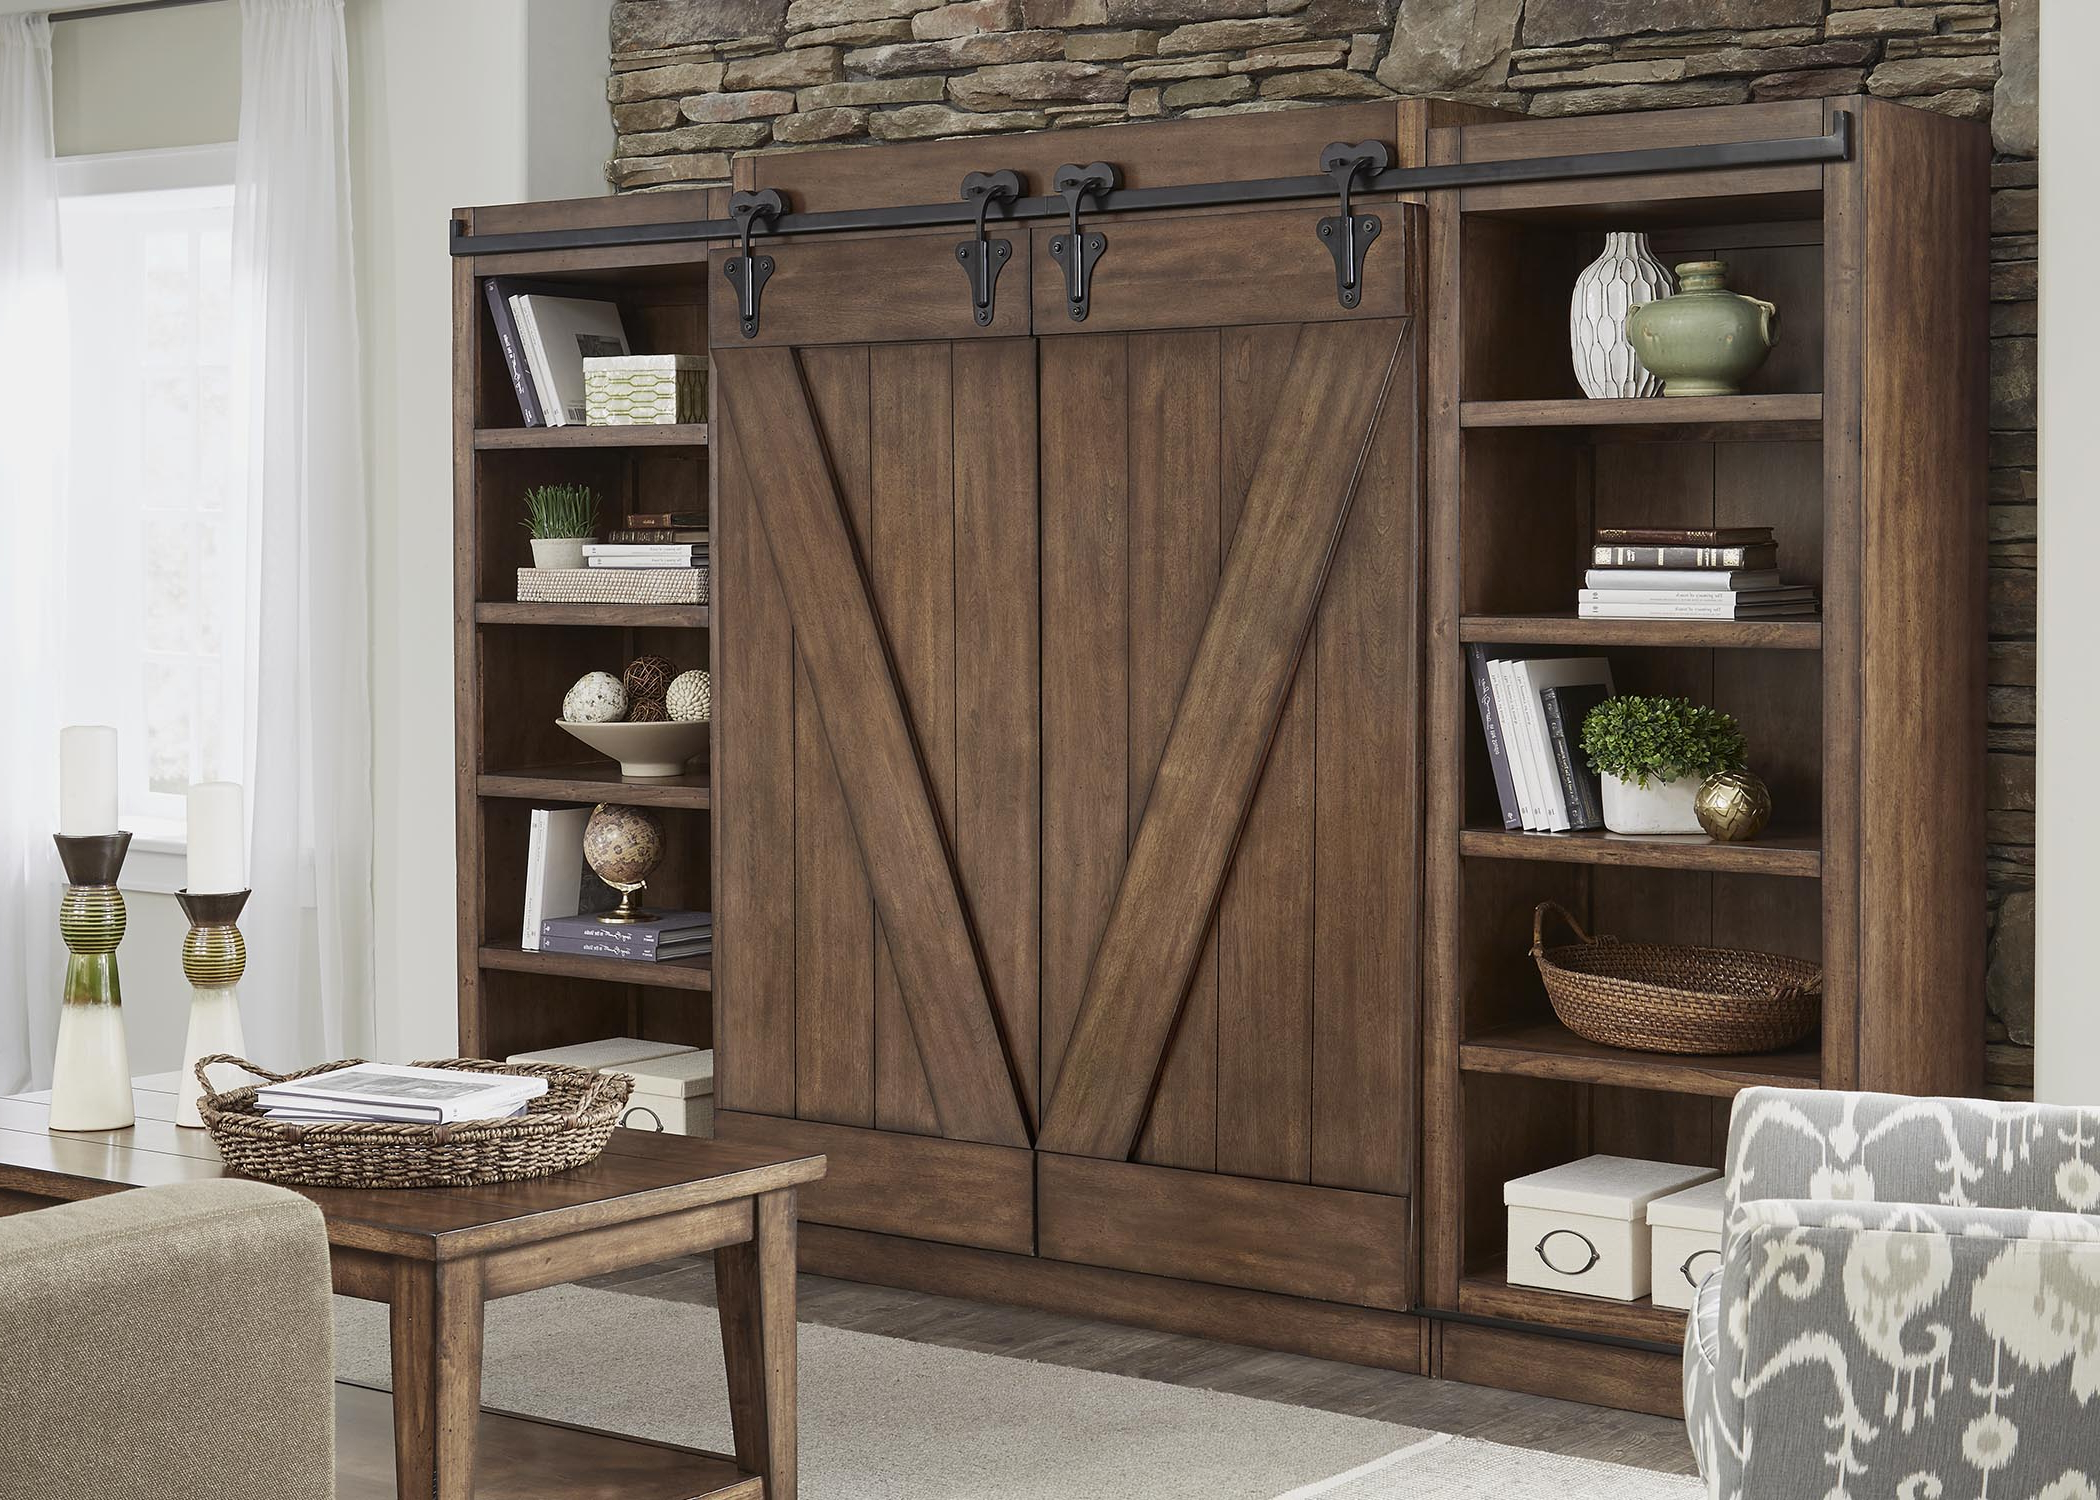 Tv Stands: Lancaster With Regard To Lancaster Corner Tv Stands (View 16 of 20)